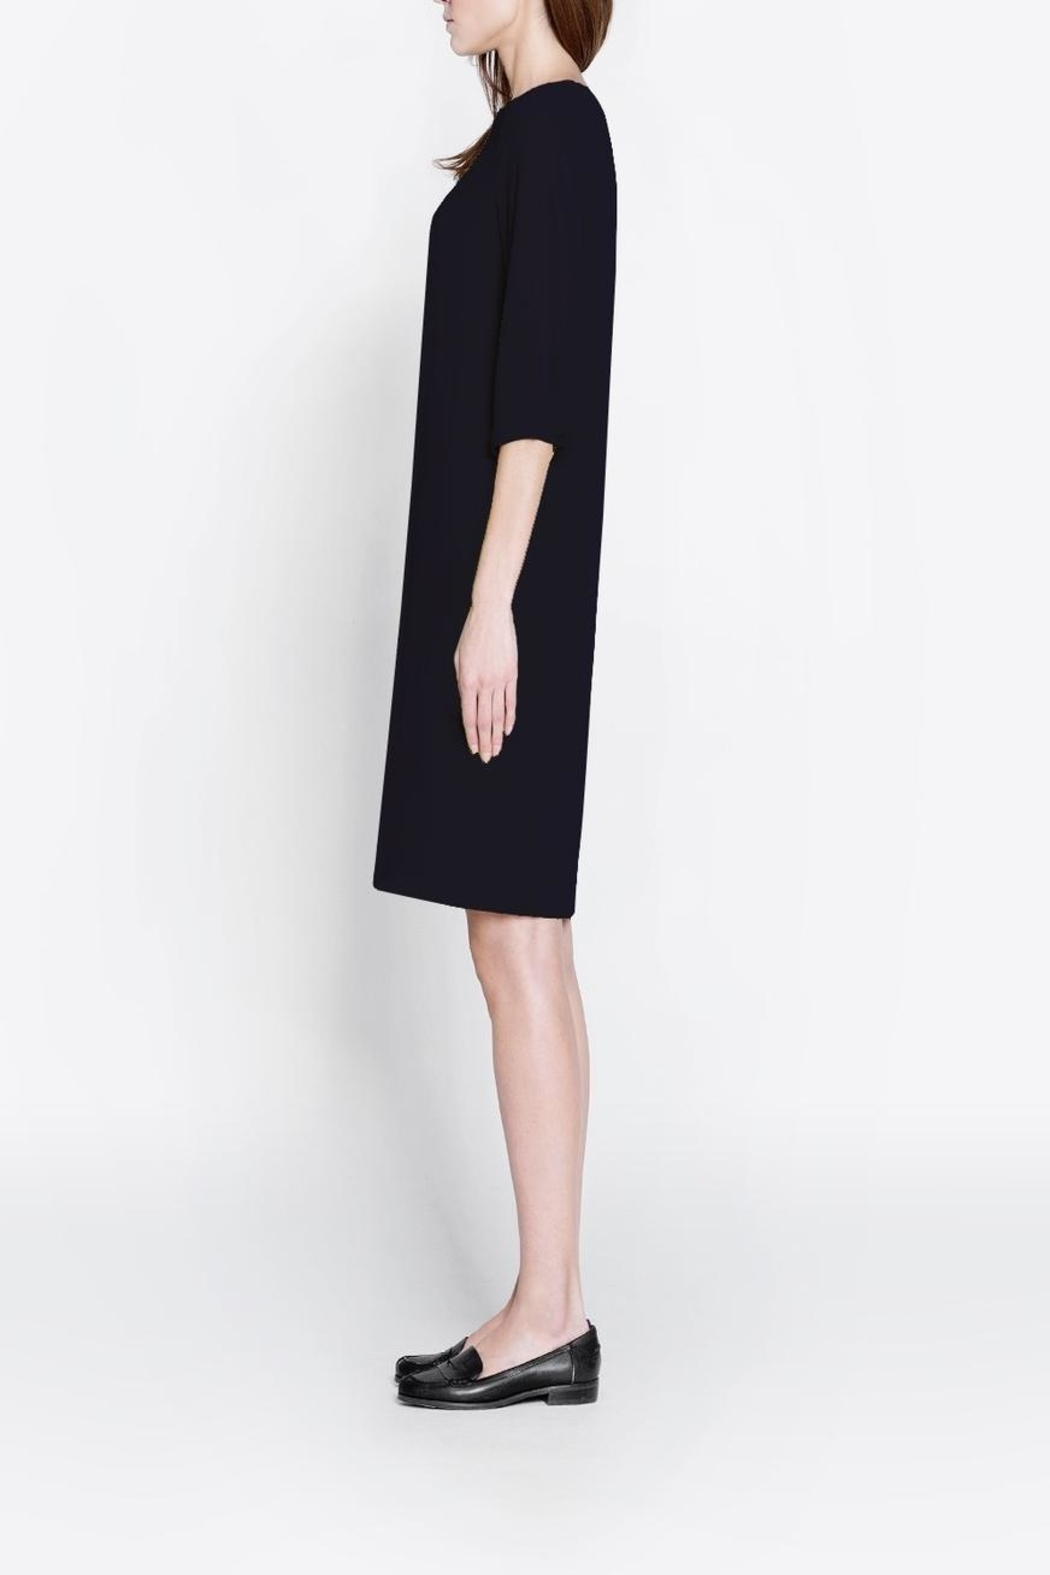 CYRILLE GASSILINE A Line Dress - Front Full Image